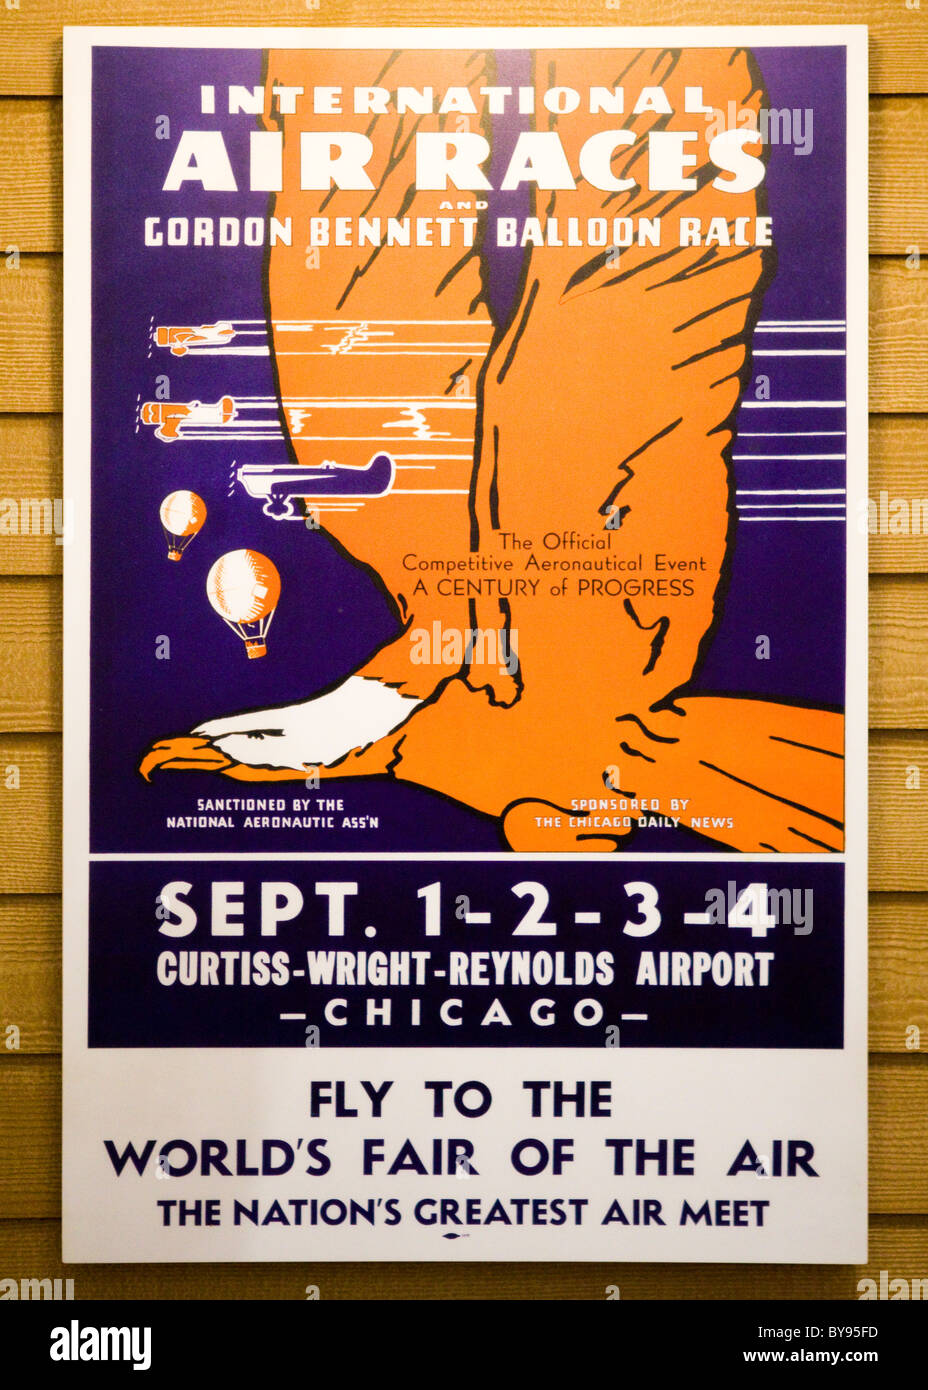 Antique early 20th century International Air Races poster - USA Stock Photo